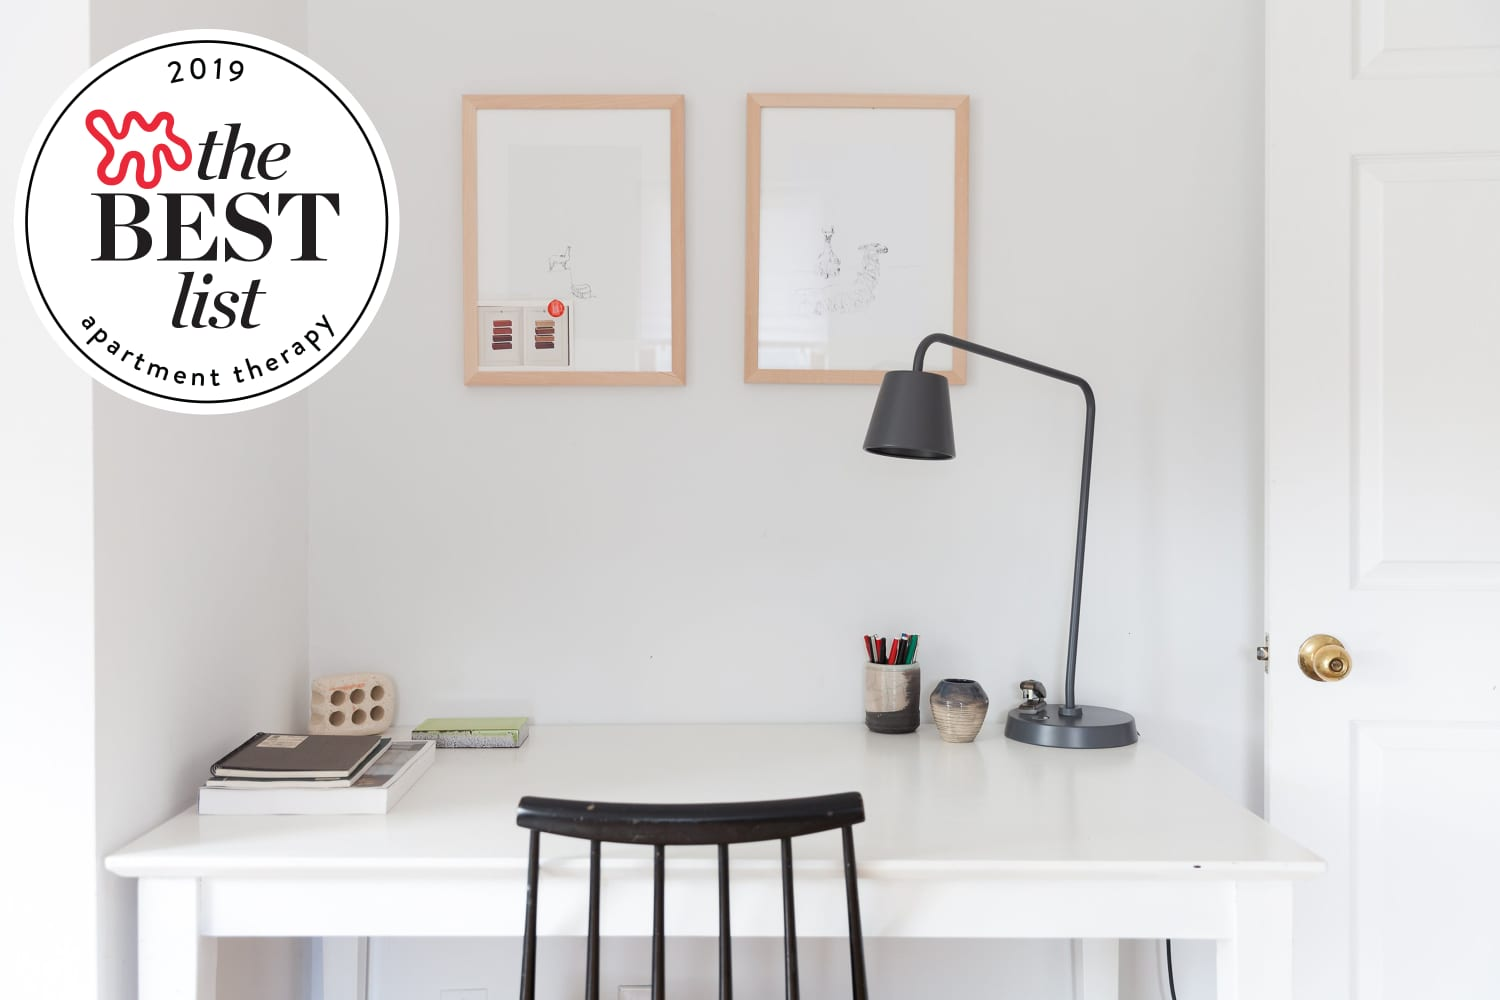 - 10 Best Desks For Small Spaces - Narrow & Small Desks To Buy